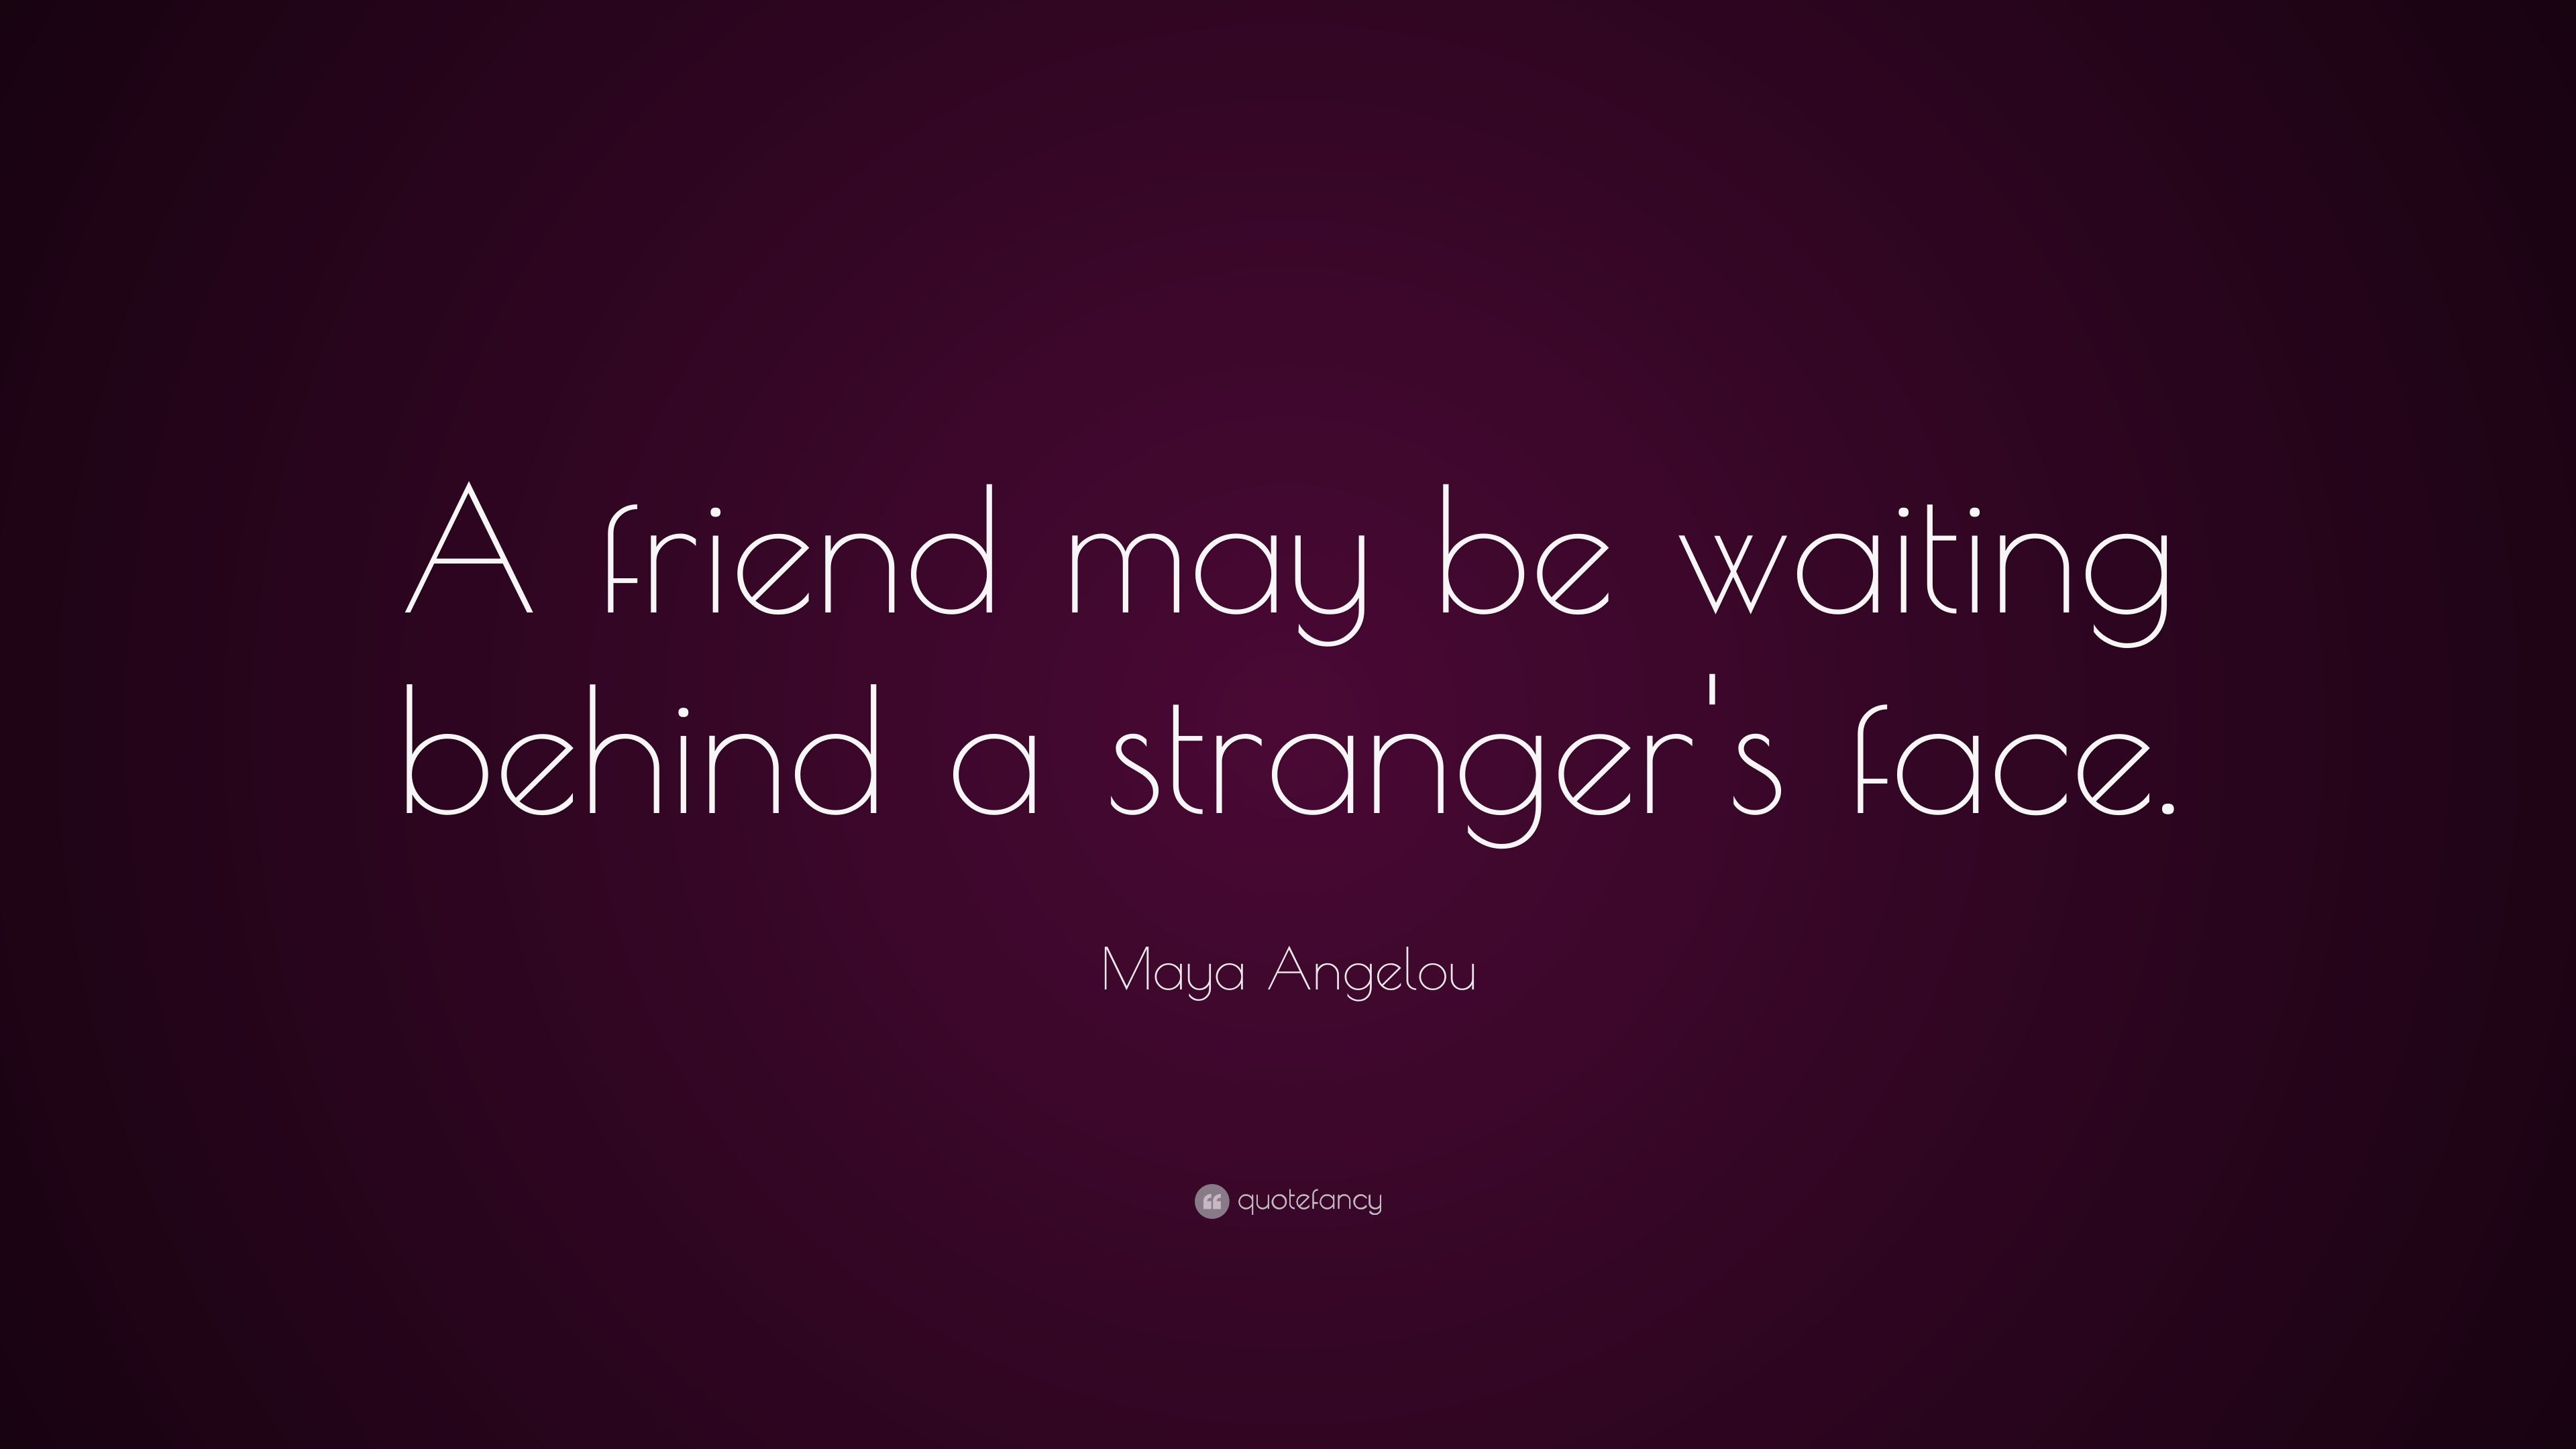 Maya Angelou Quotes On Love And Relationships Maya Angelou Quotes Wallpaperquotesgram  Words  Pinterest